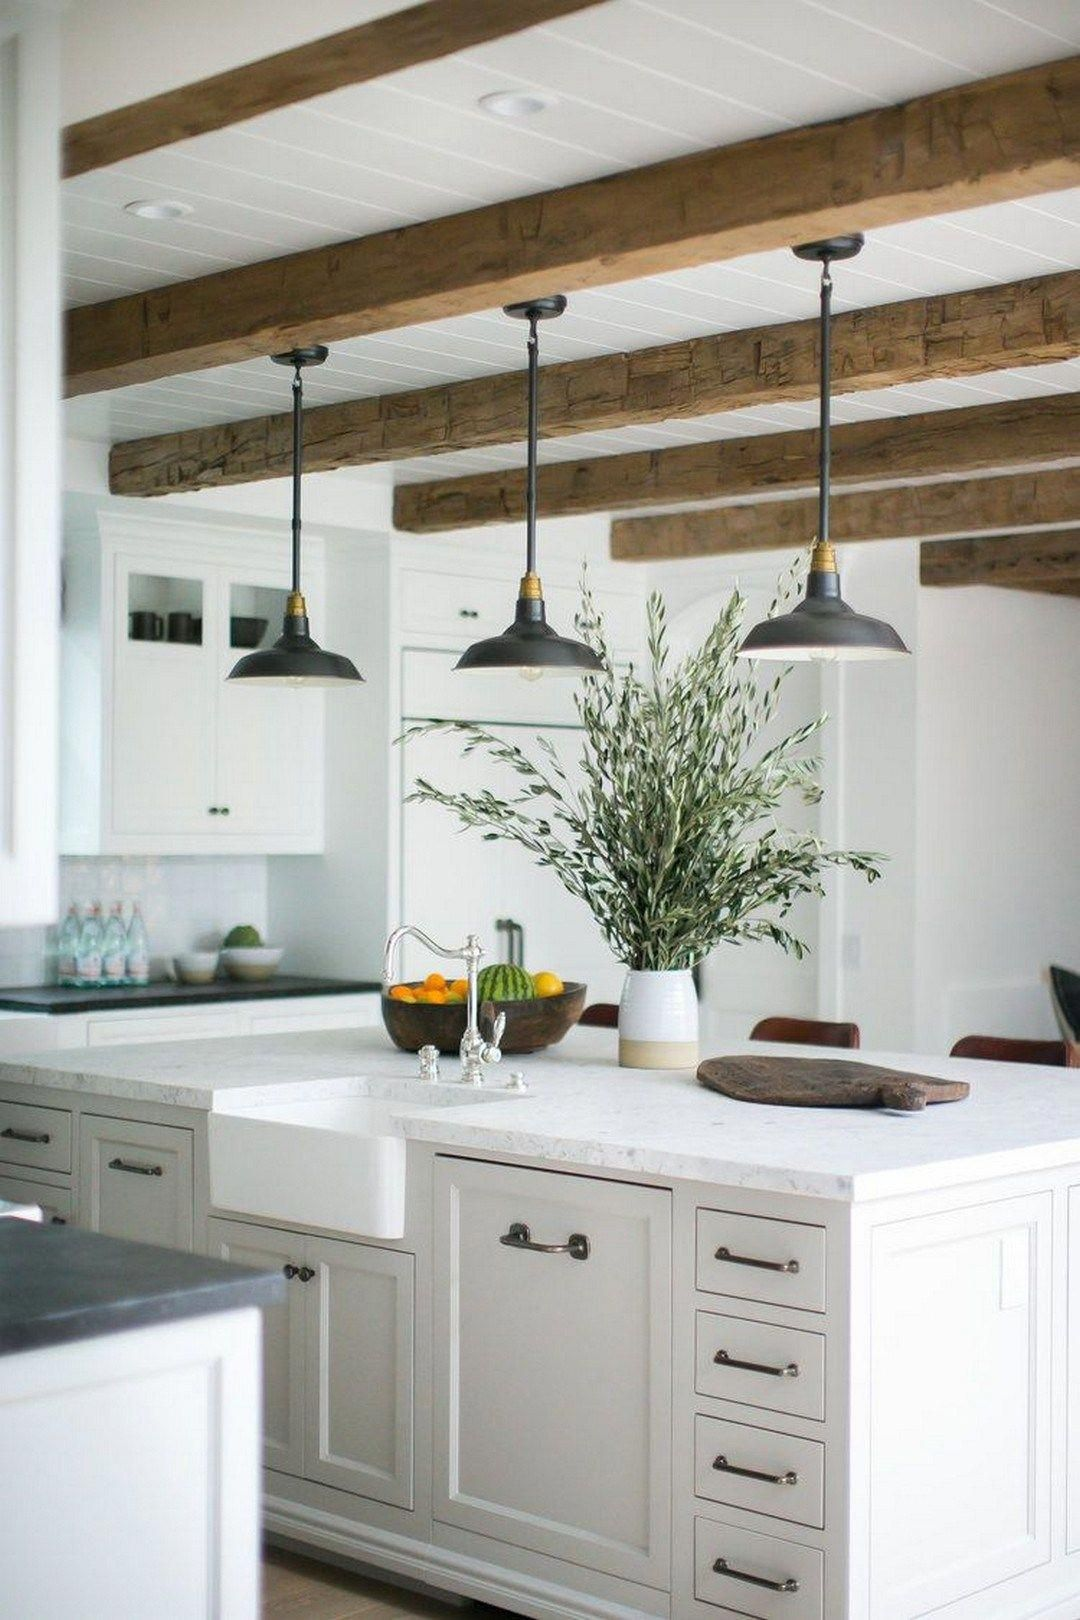 10 Kitchen And Home Decor Items Every 20 Something Needs: Ultimate Kitchen Island Design Ideas (10